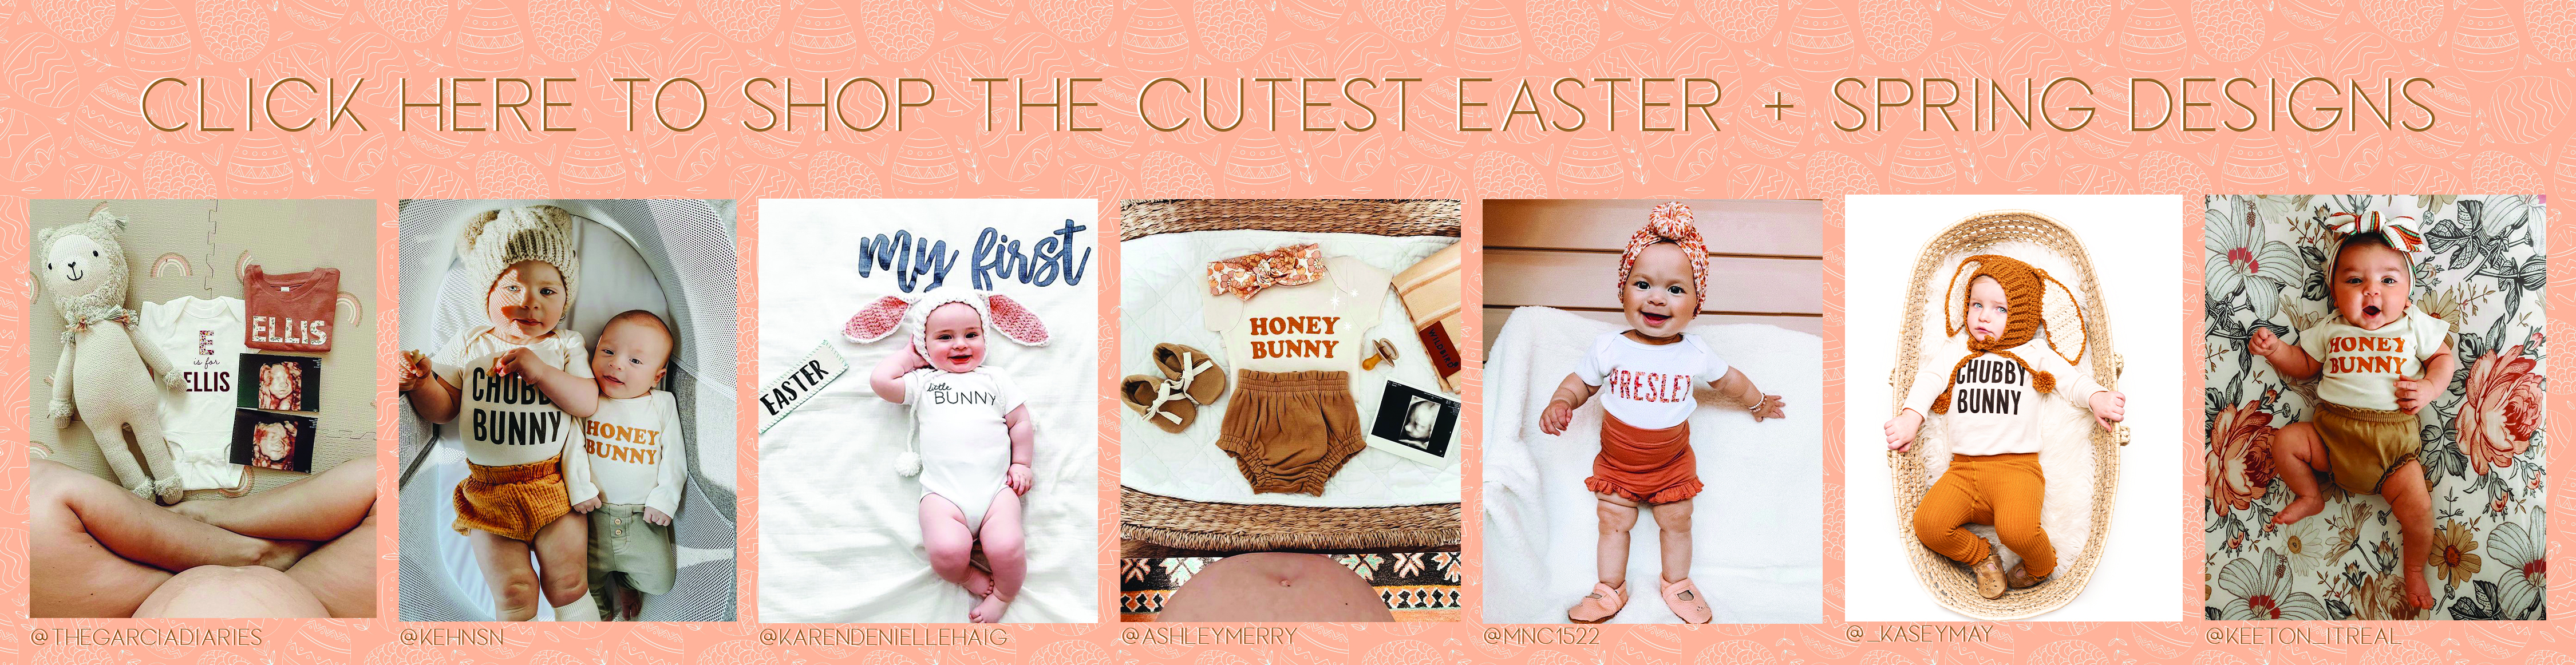 The Cutest Easter Shirts & Spring Shirts